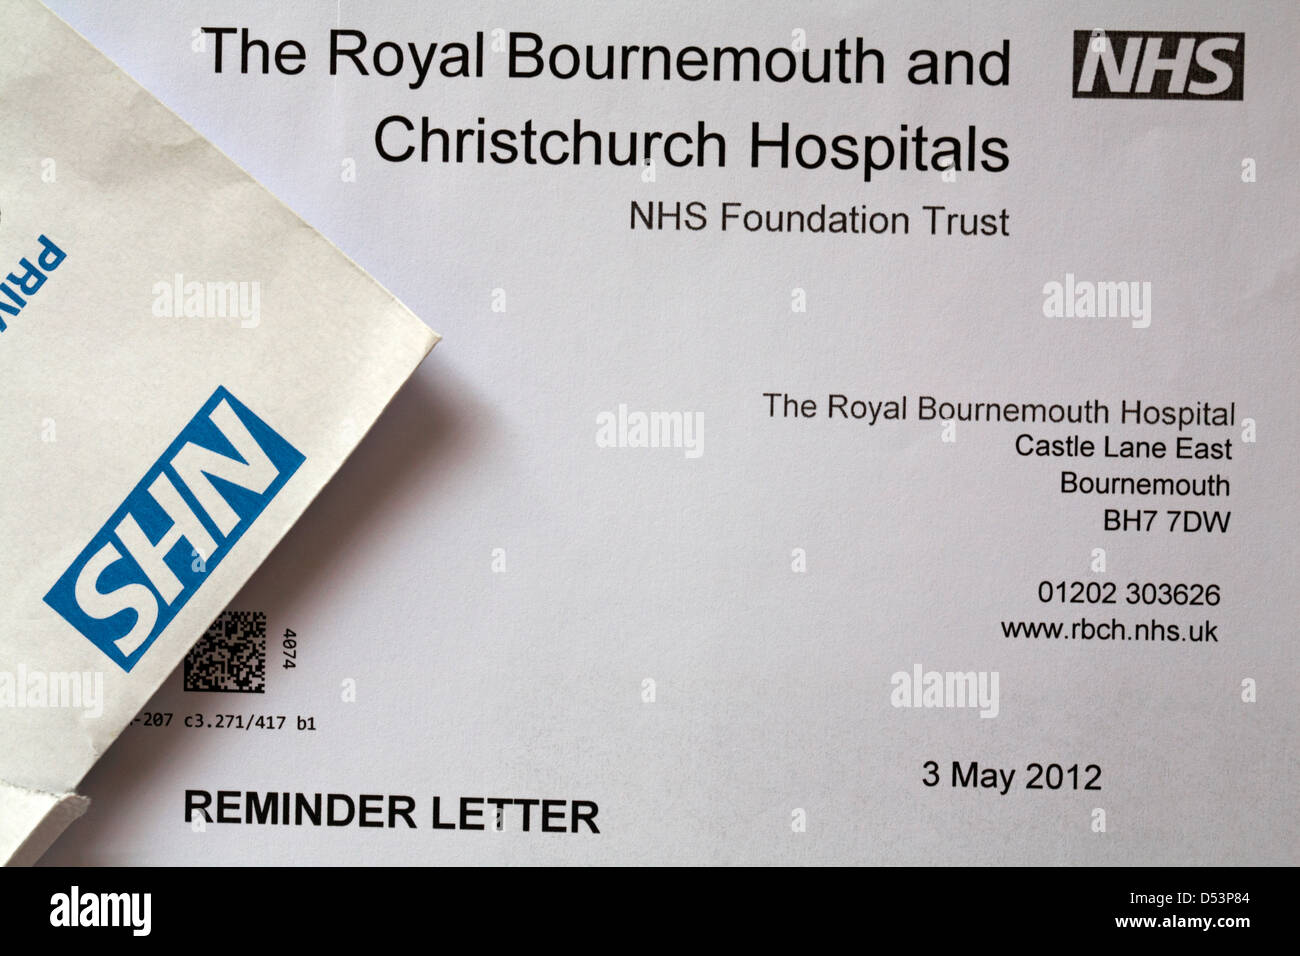 Reminder letter for a hospital appointment from The Royal Bournemouth and Christchurch Hospitals NHS Foundation - Stock Image